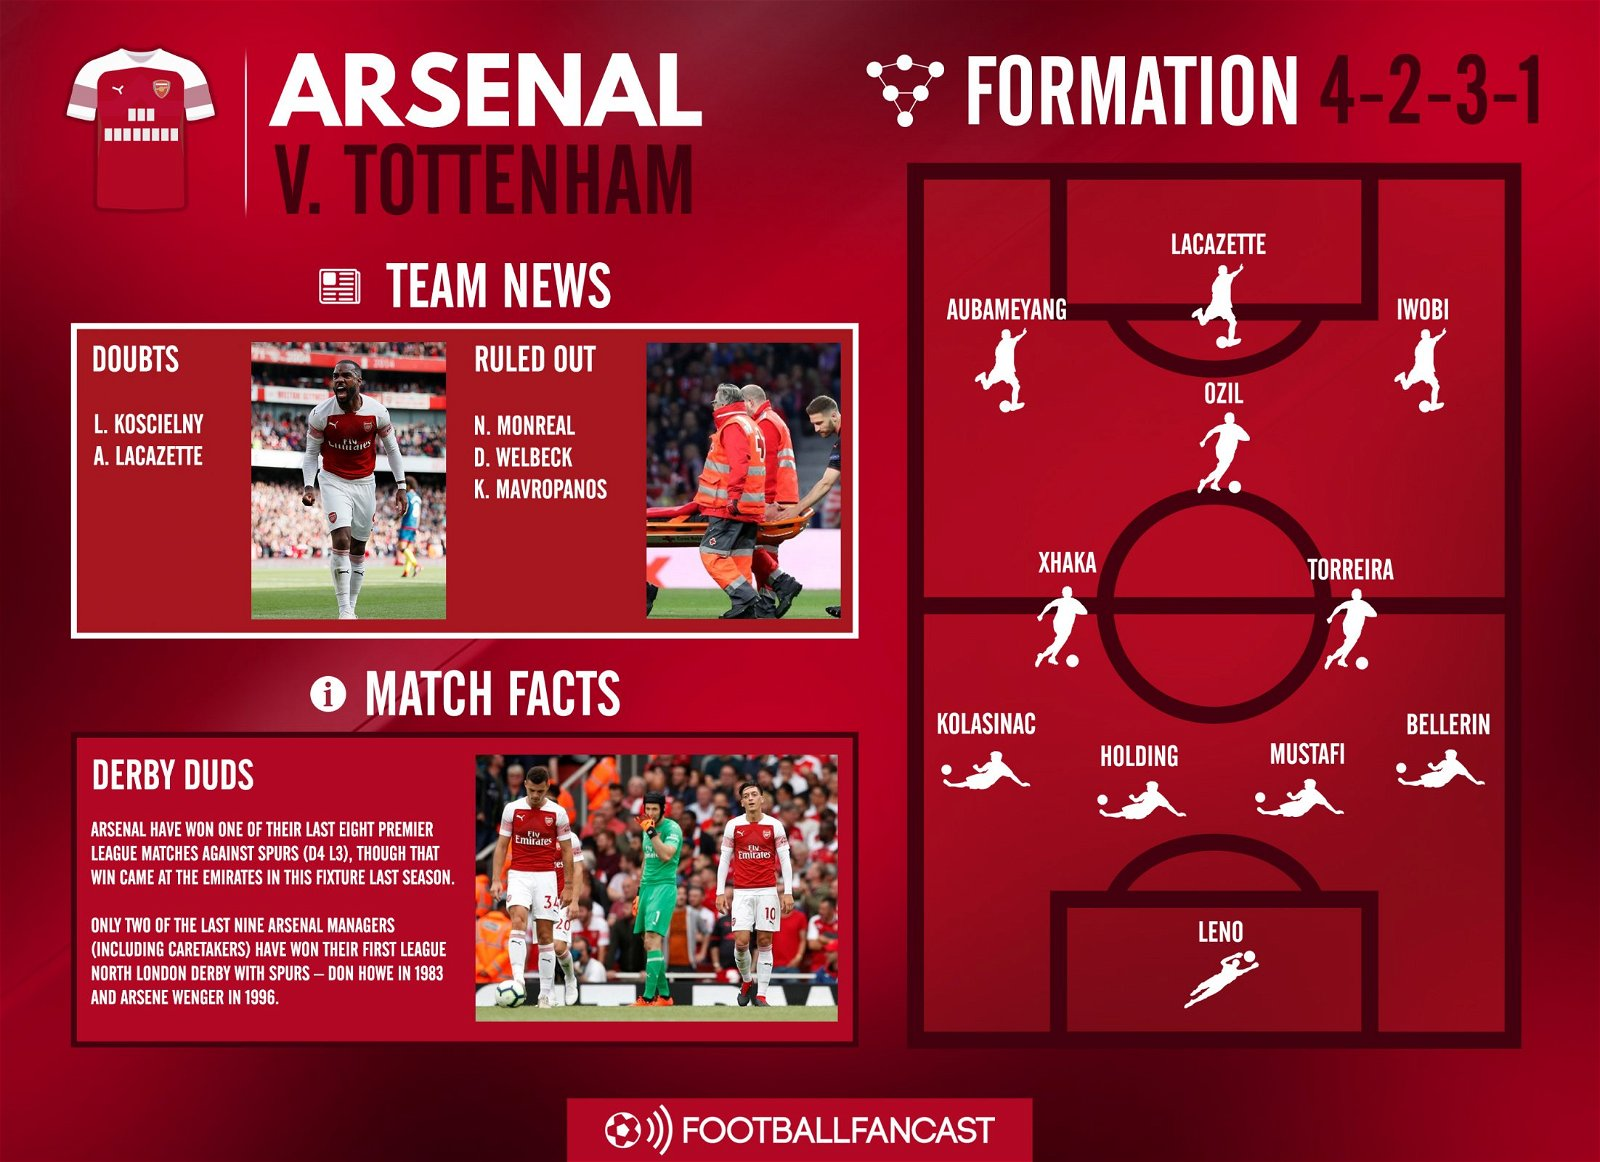 Arsenal Team News for Tottenham clash